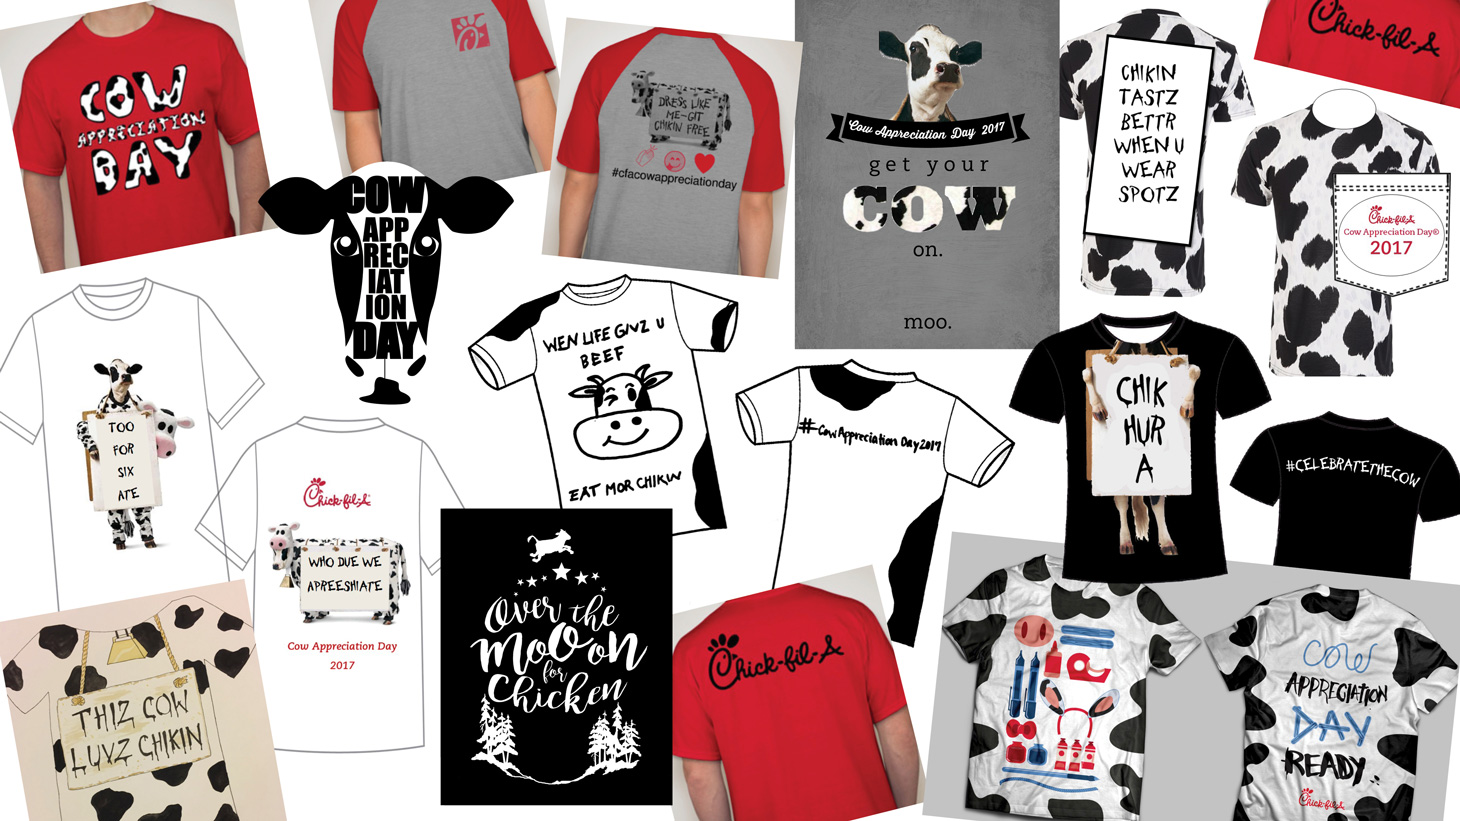 graphic regarding Cow Appreciation Day Printable identify Cost-free entrees for cow-dressed consumers Chick-fil-A